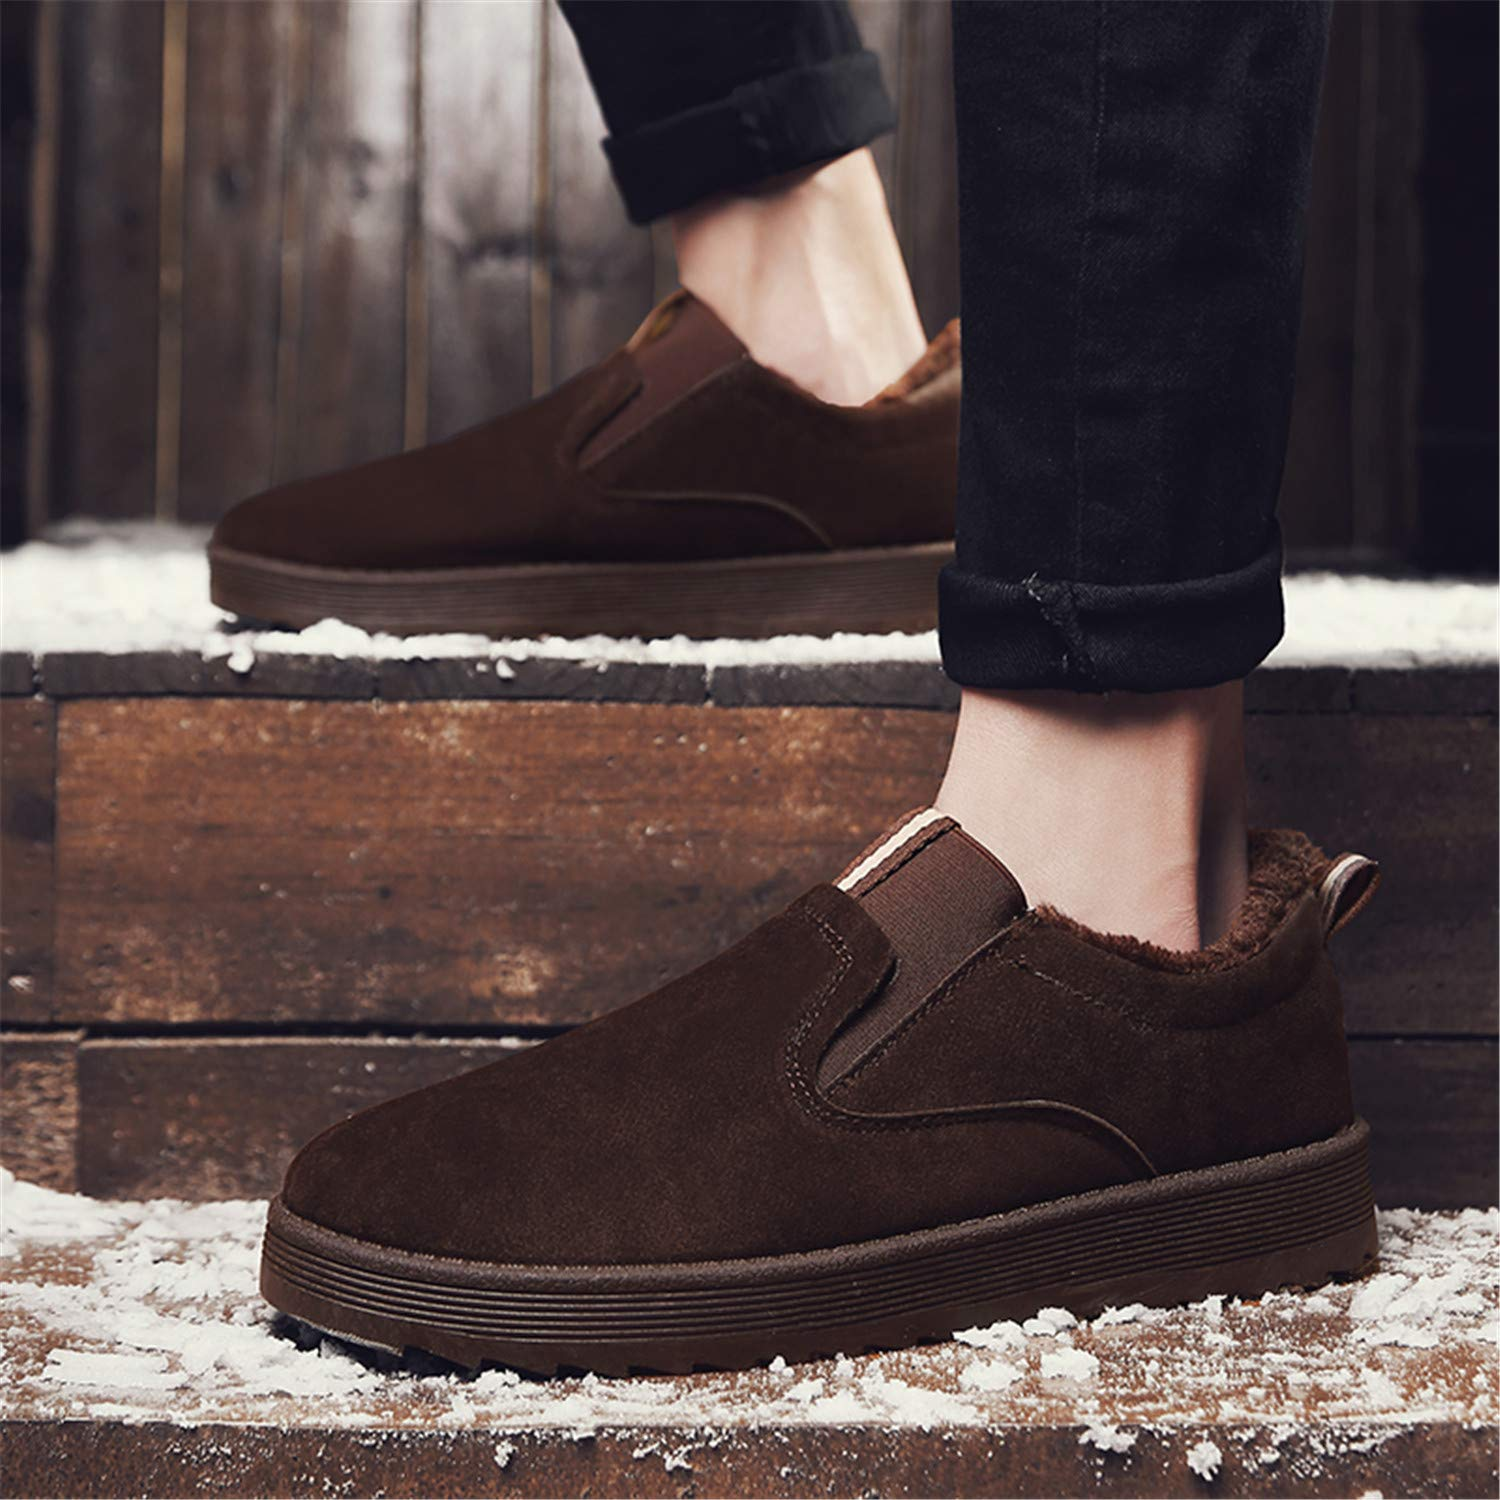 EKINL Mens Winter Outdoor Walking Shoes Comfortable Warm Flats for Workout Suede Snow Boots Low-top Sneakers Slip On